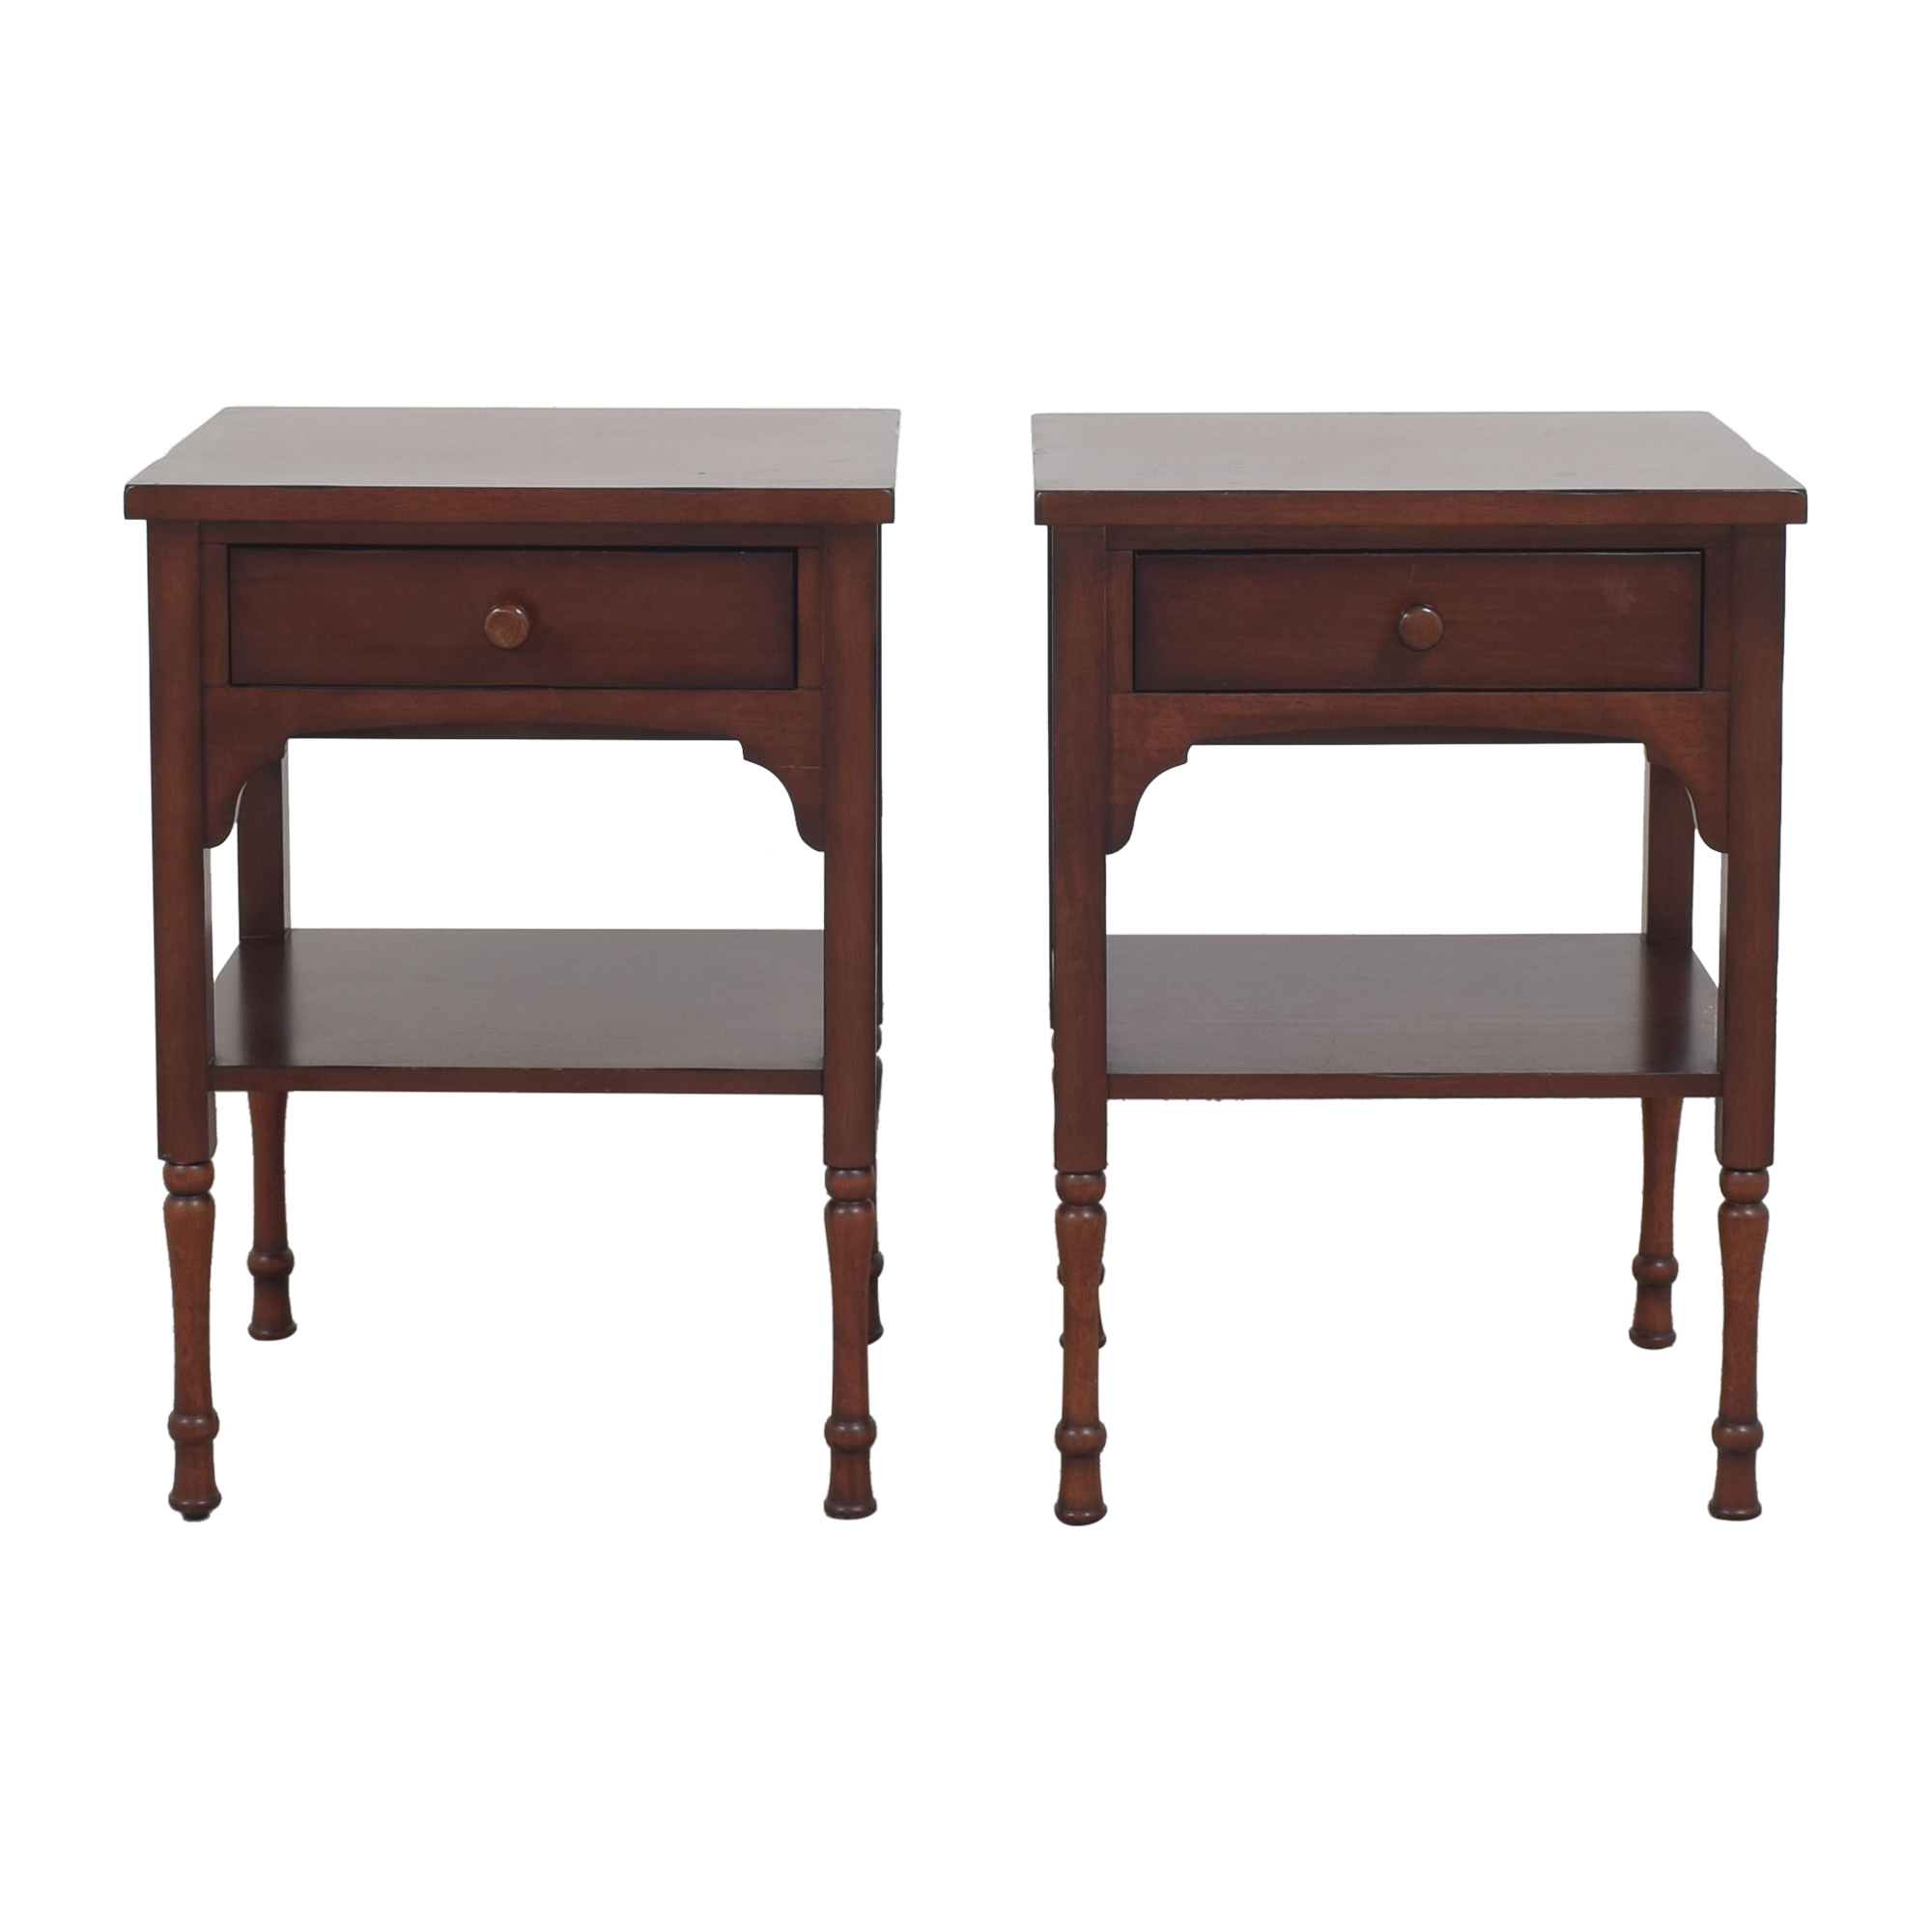 Pottery Barn Pottery Barn Single Drawer End Tables ma